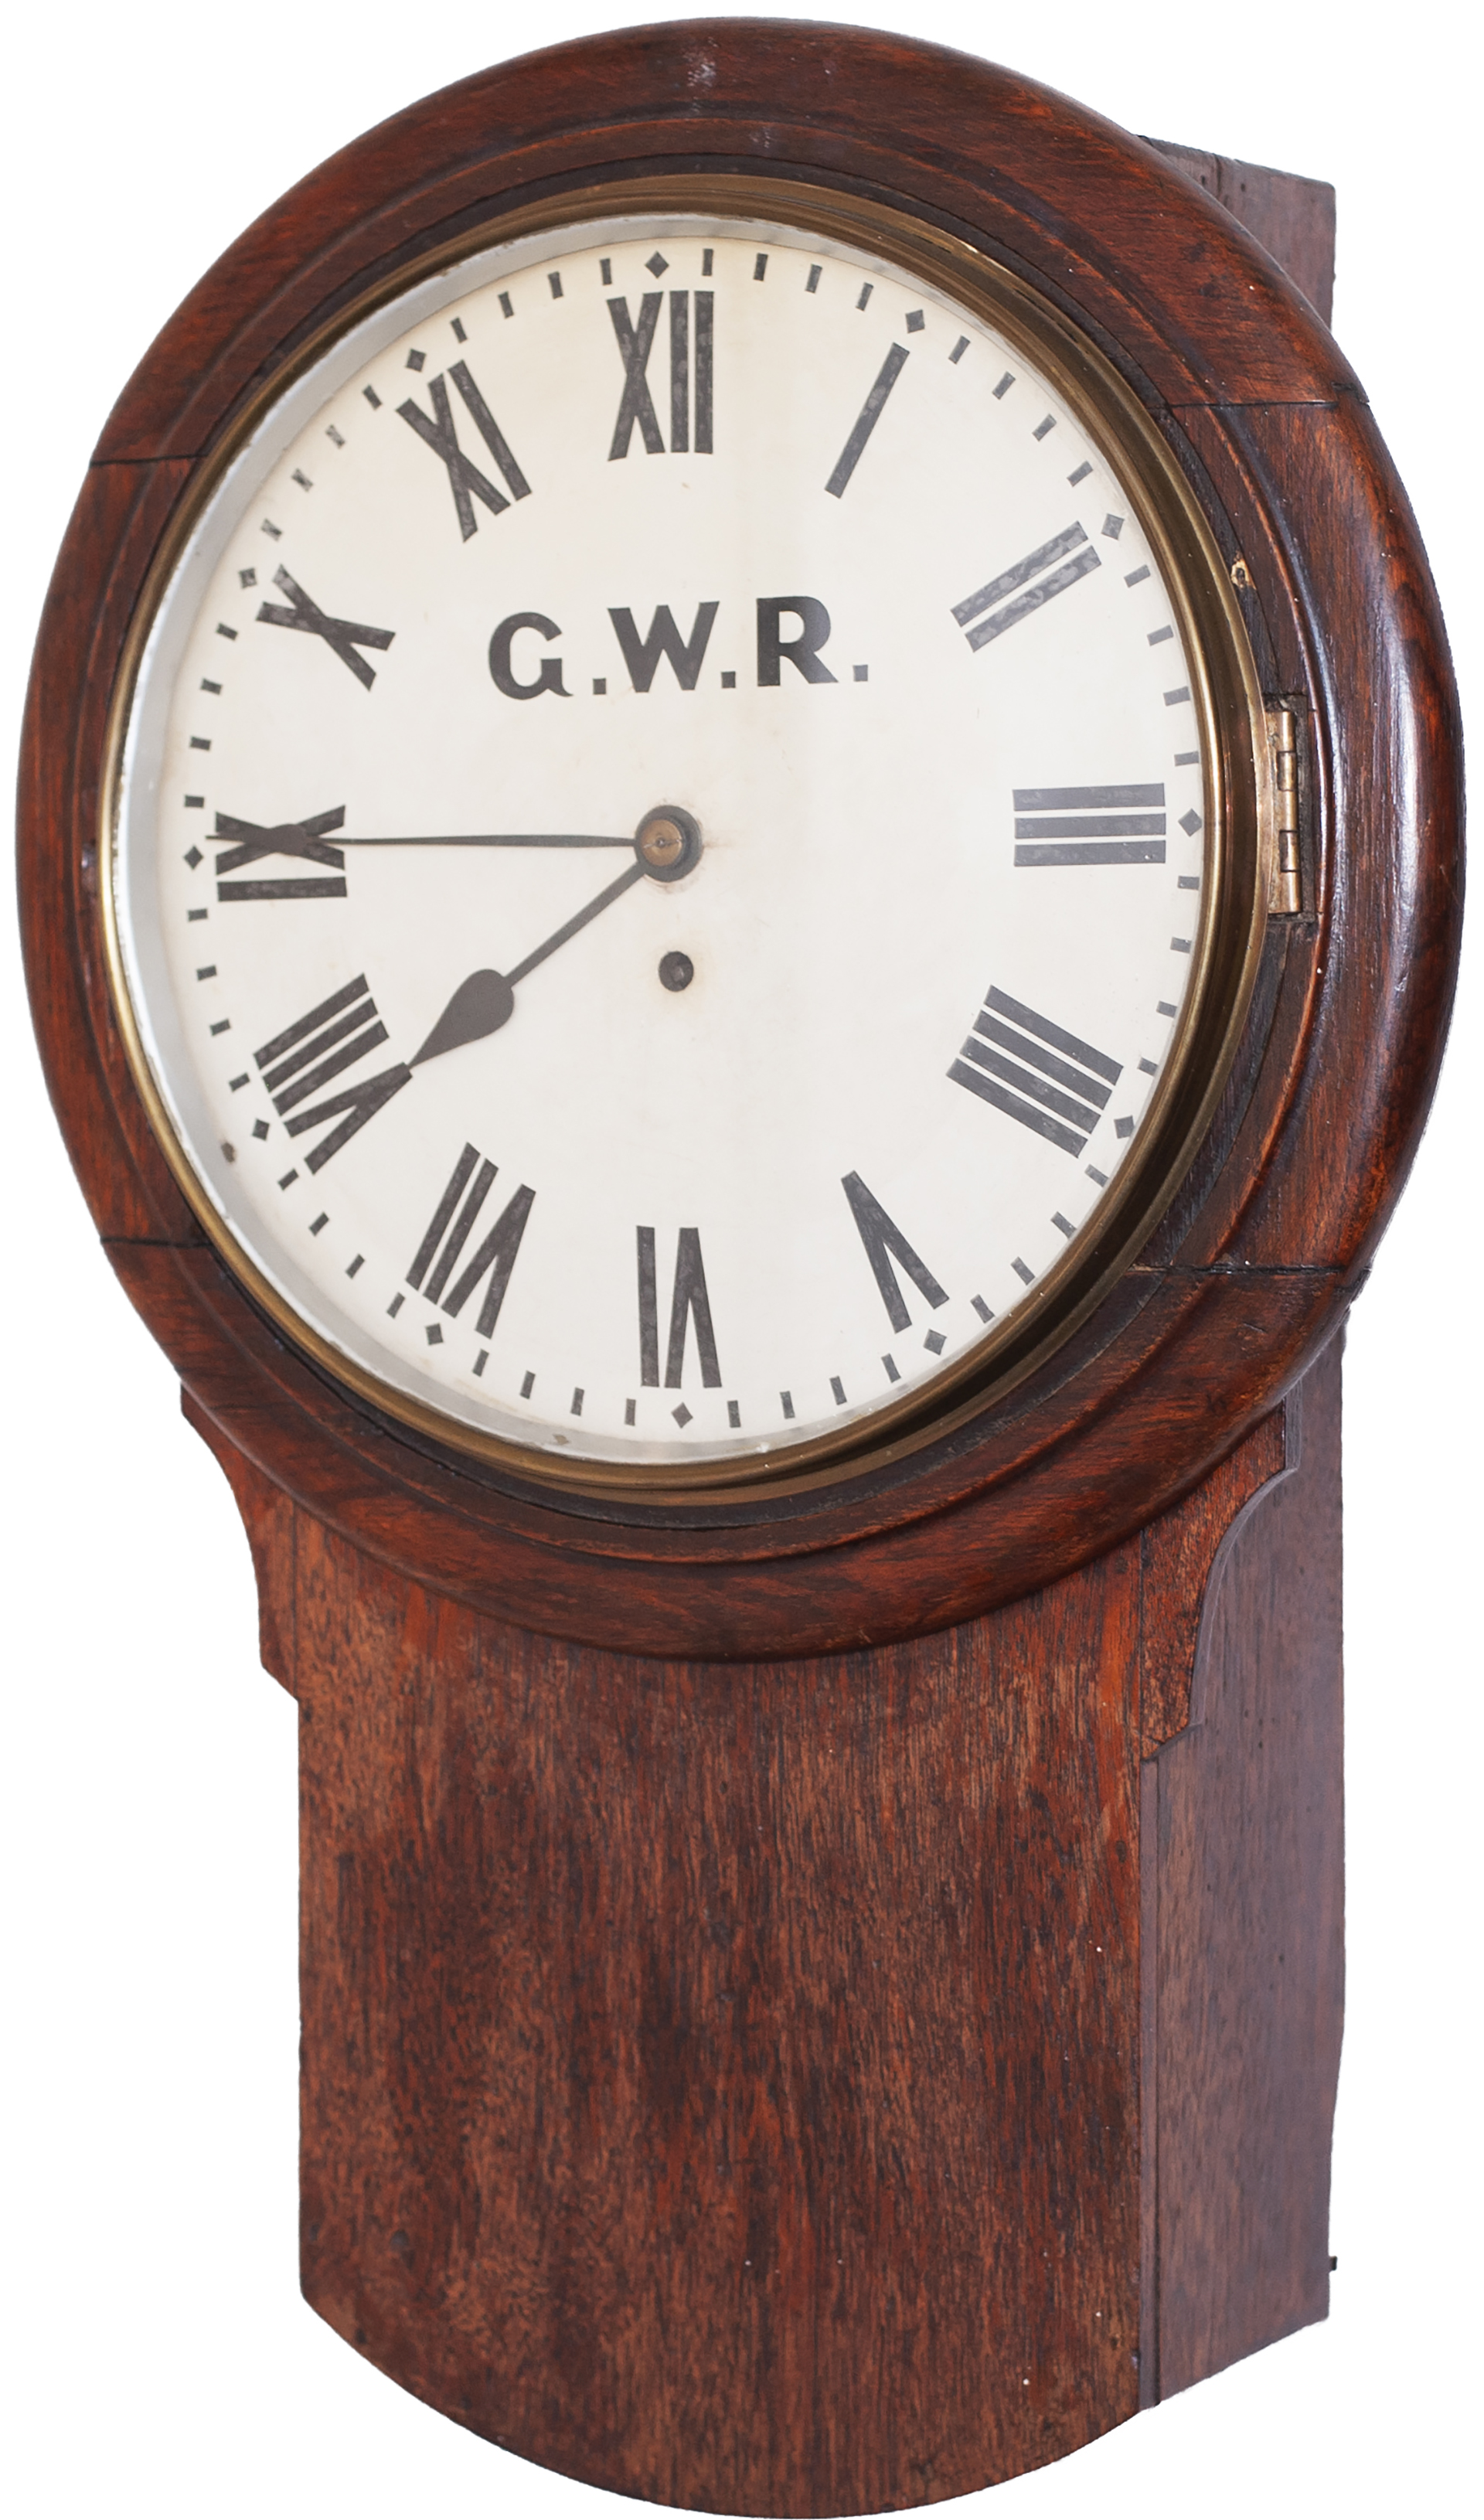 Great Western Railway 12 inch oak cased drop dial trunk fusee railway clock with a wire driven